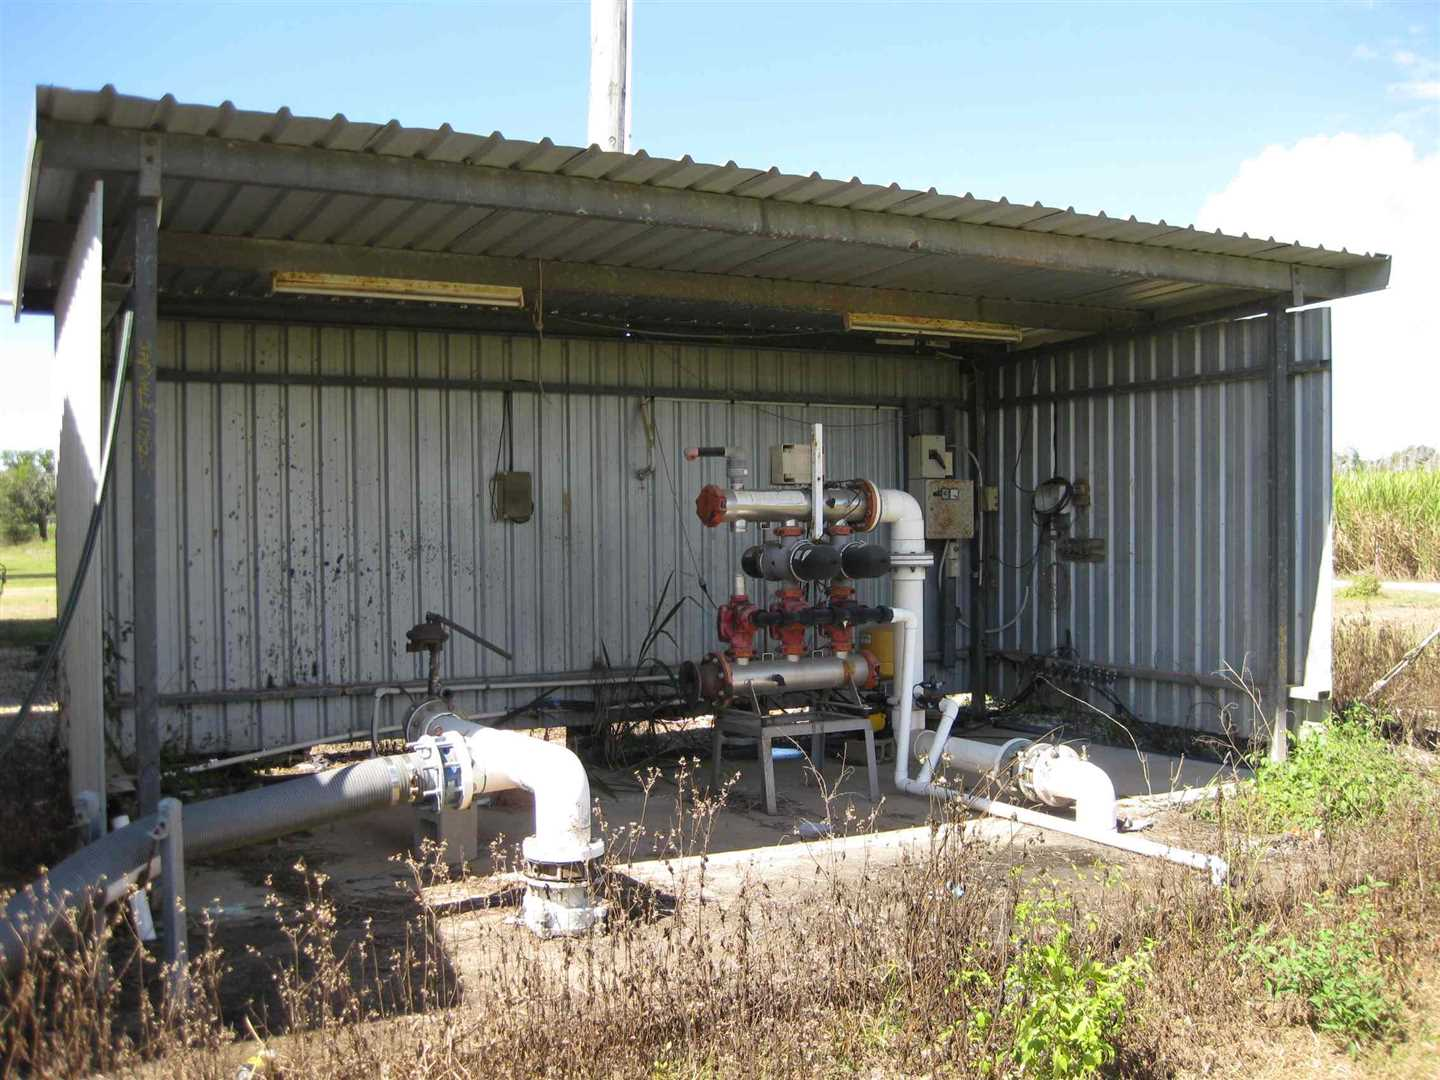 View of part of pump shed adjacent to high-set home. Note that irrigation piping, filters and items shown are not in use or working condition